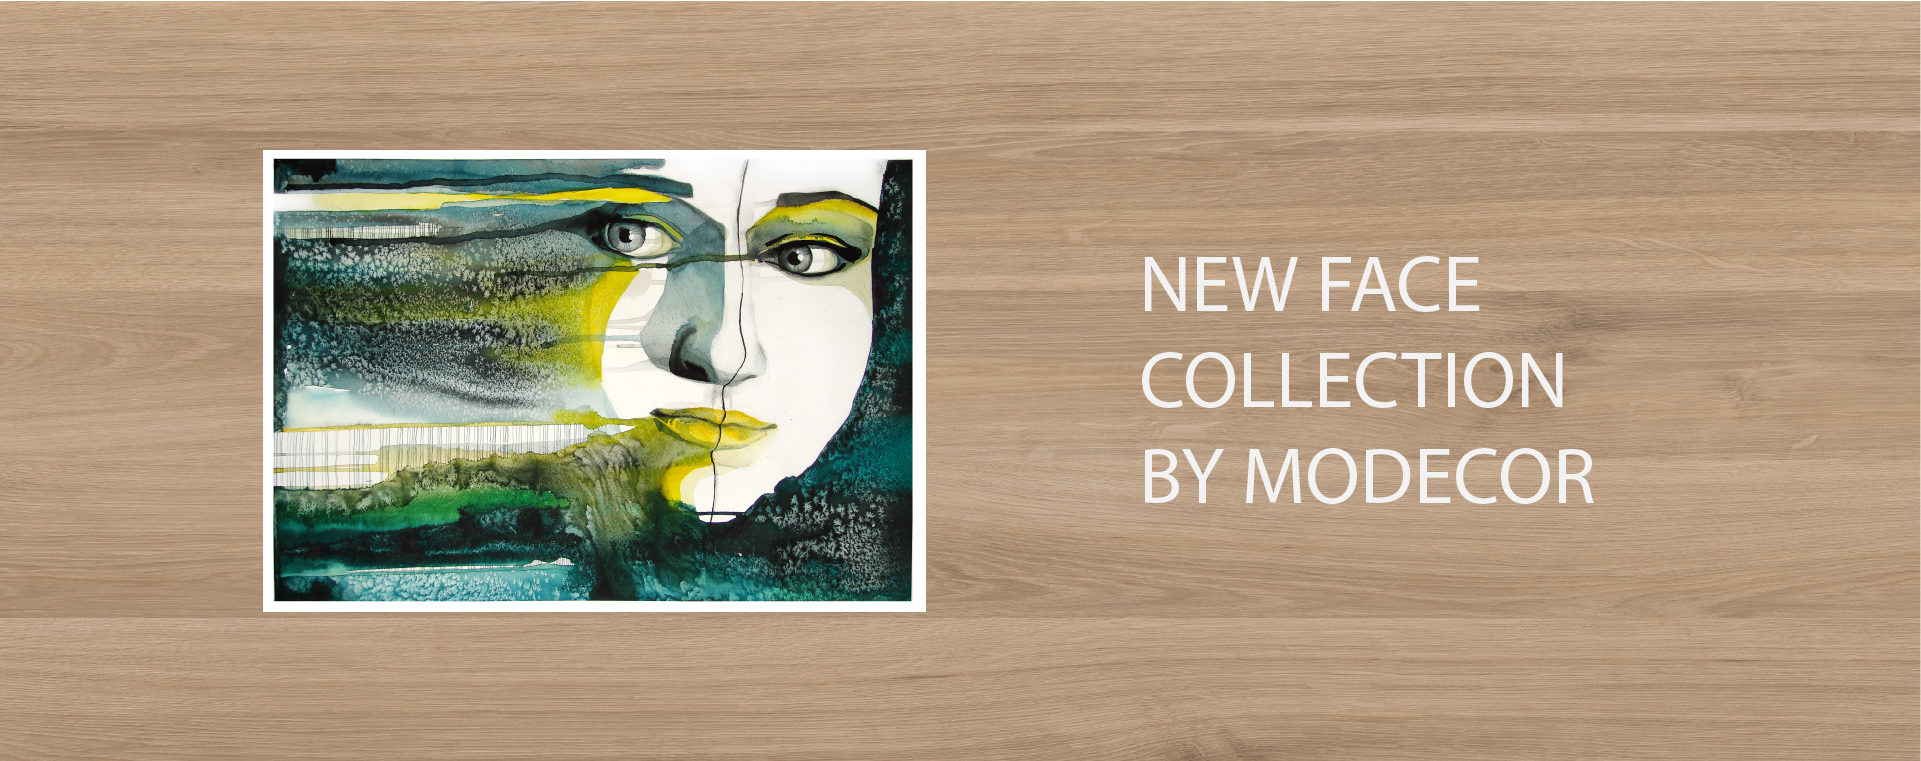 New Face Collection by Modecor